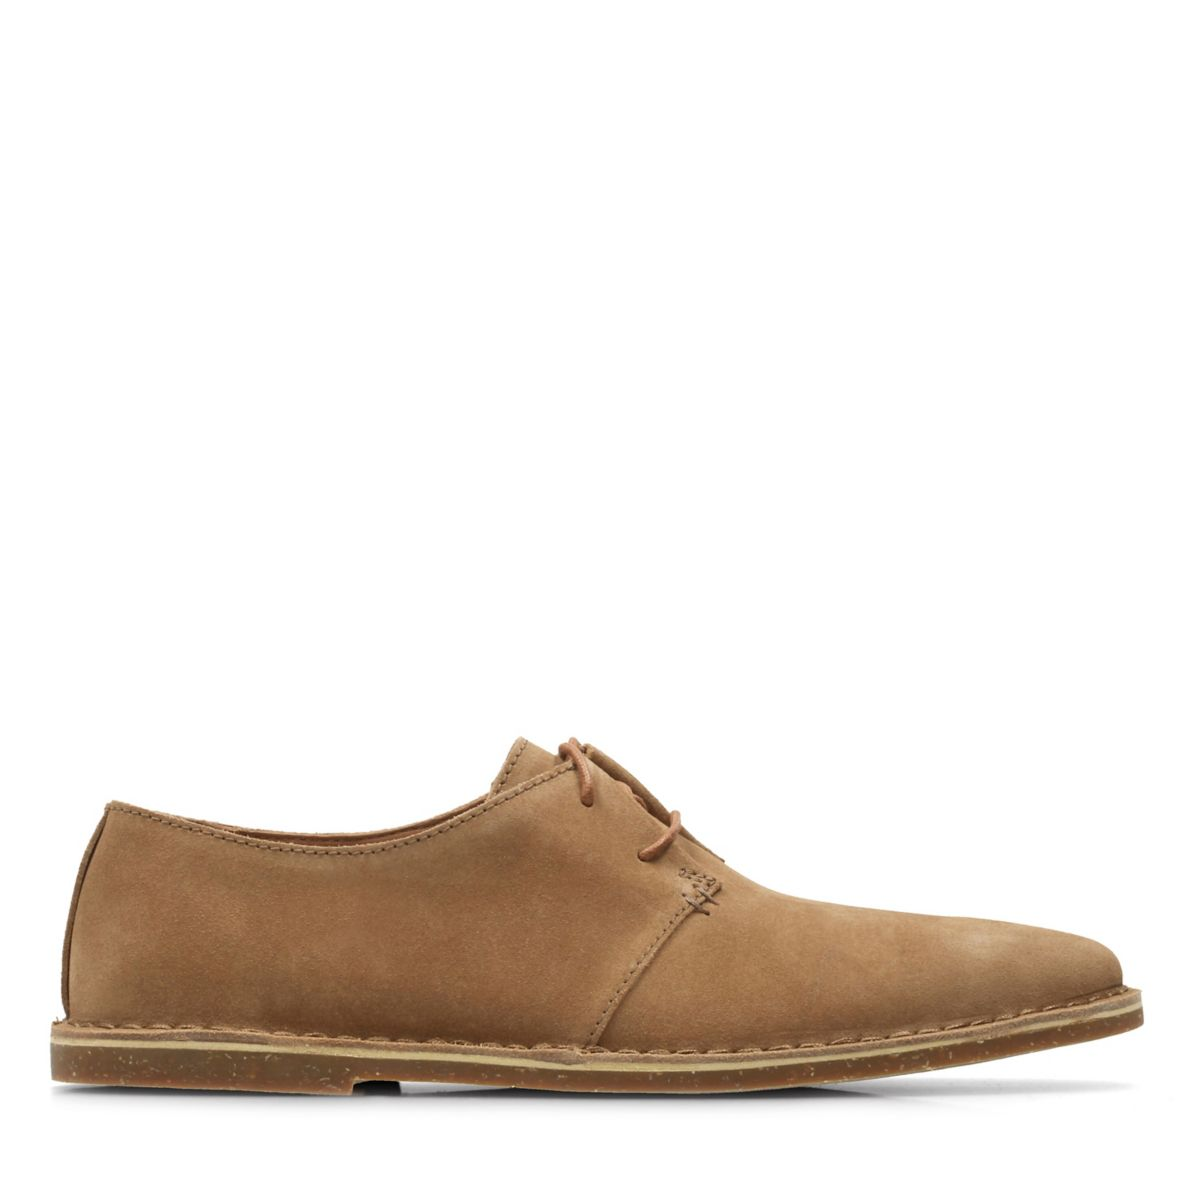 Baltimore Lace Tan Suede Clarks